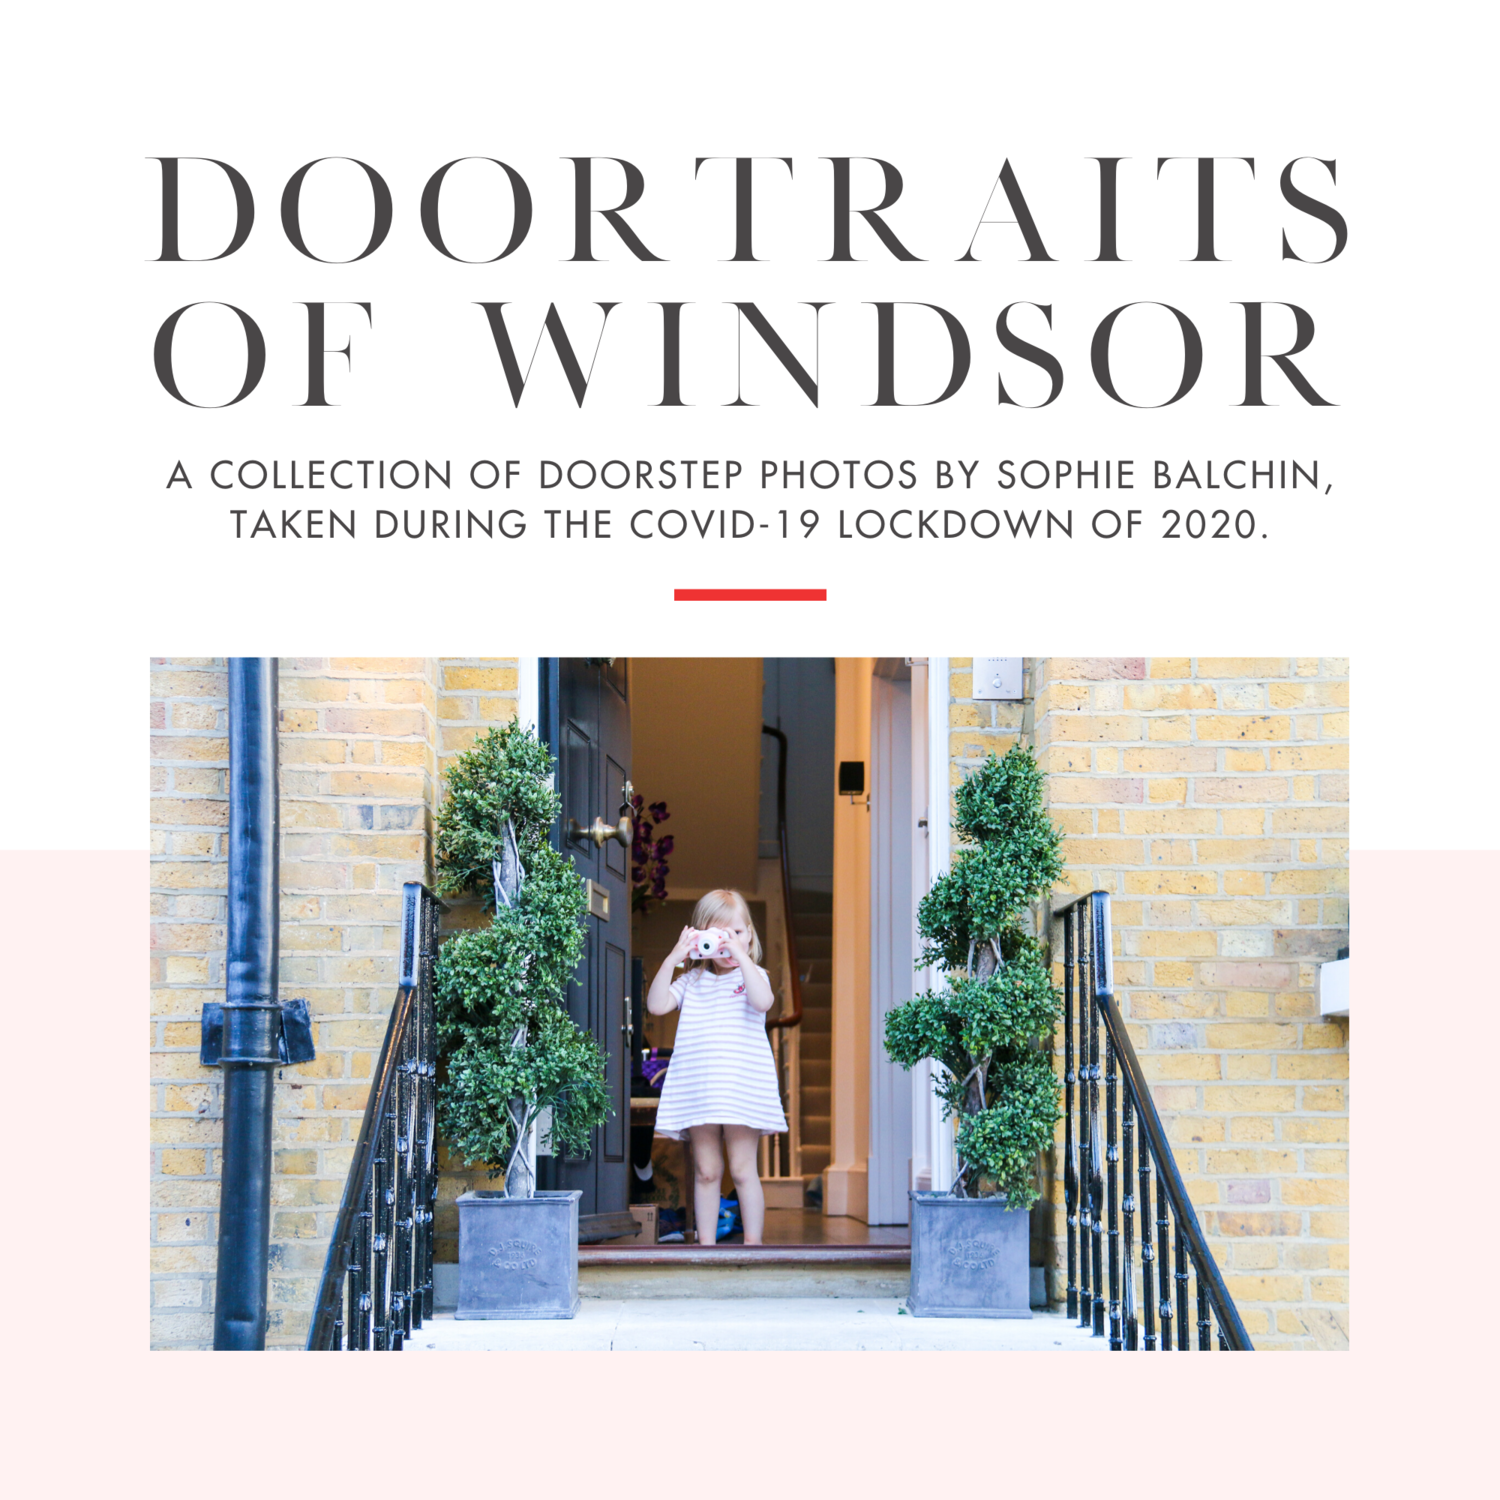 Doortraits of Windsor - Signed by Sophie Balchin